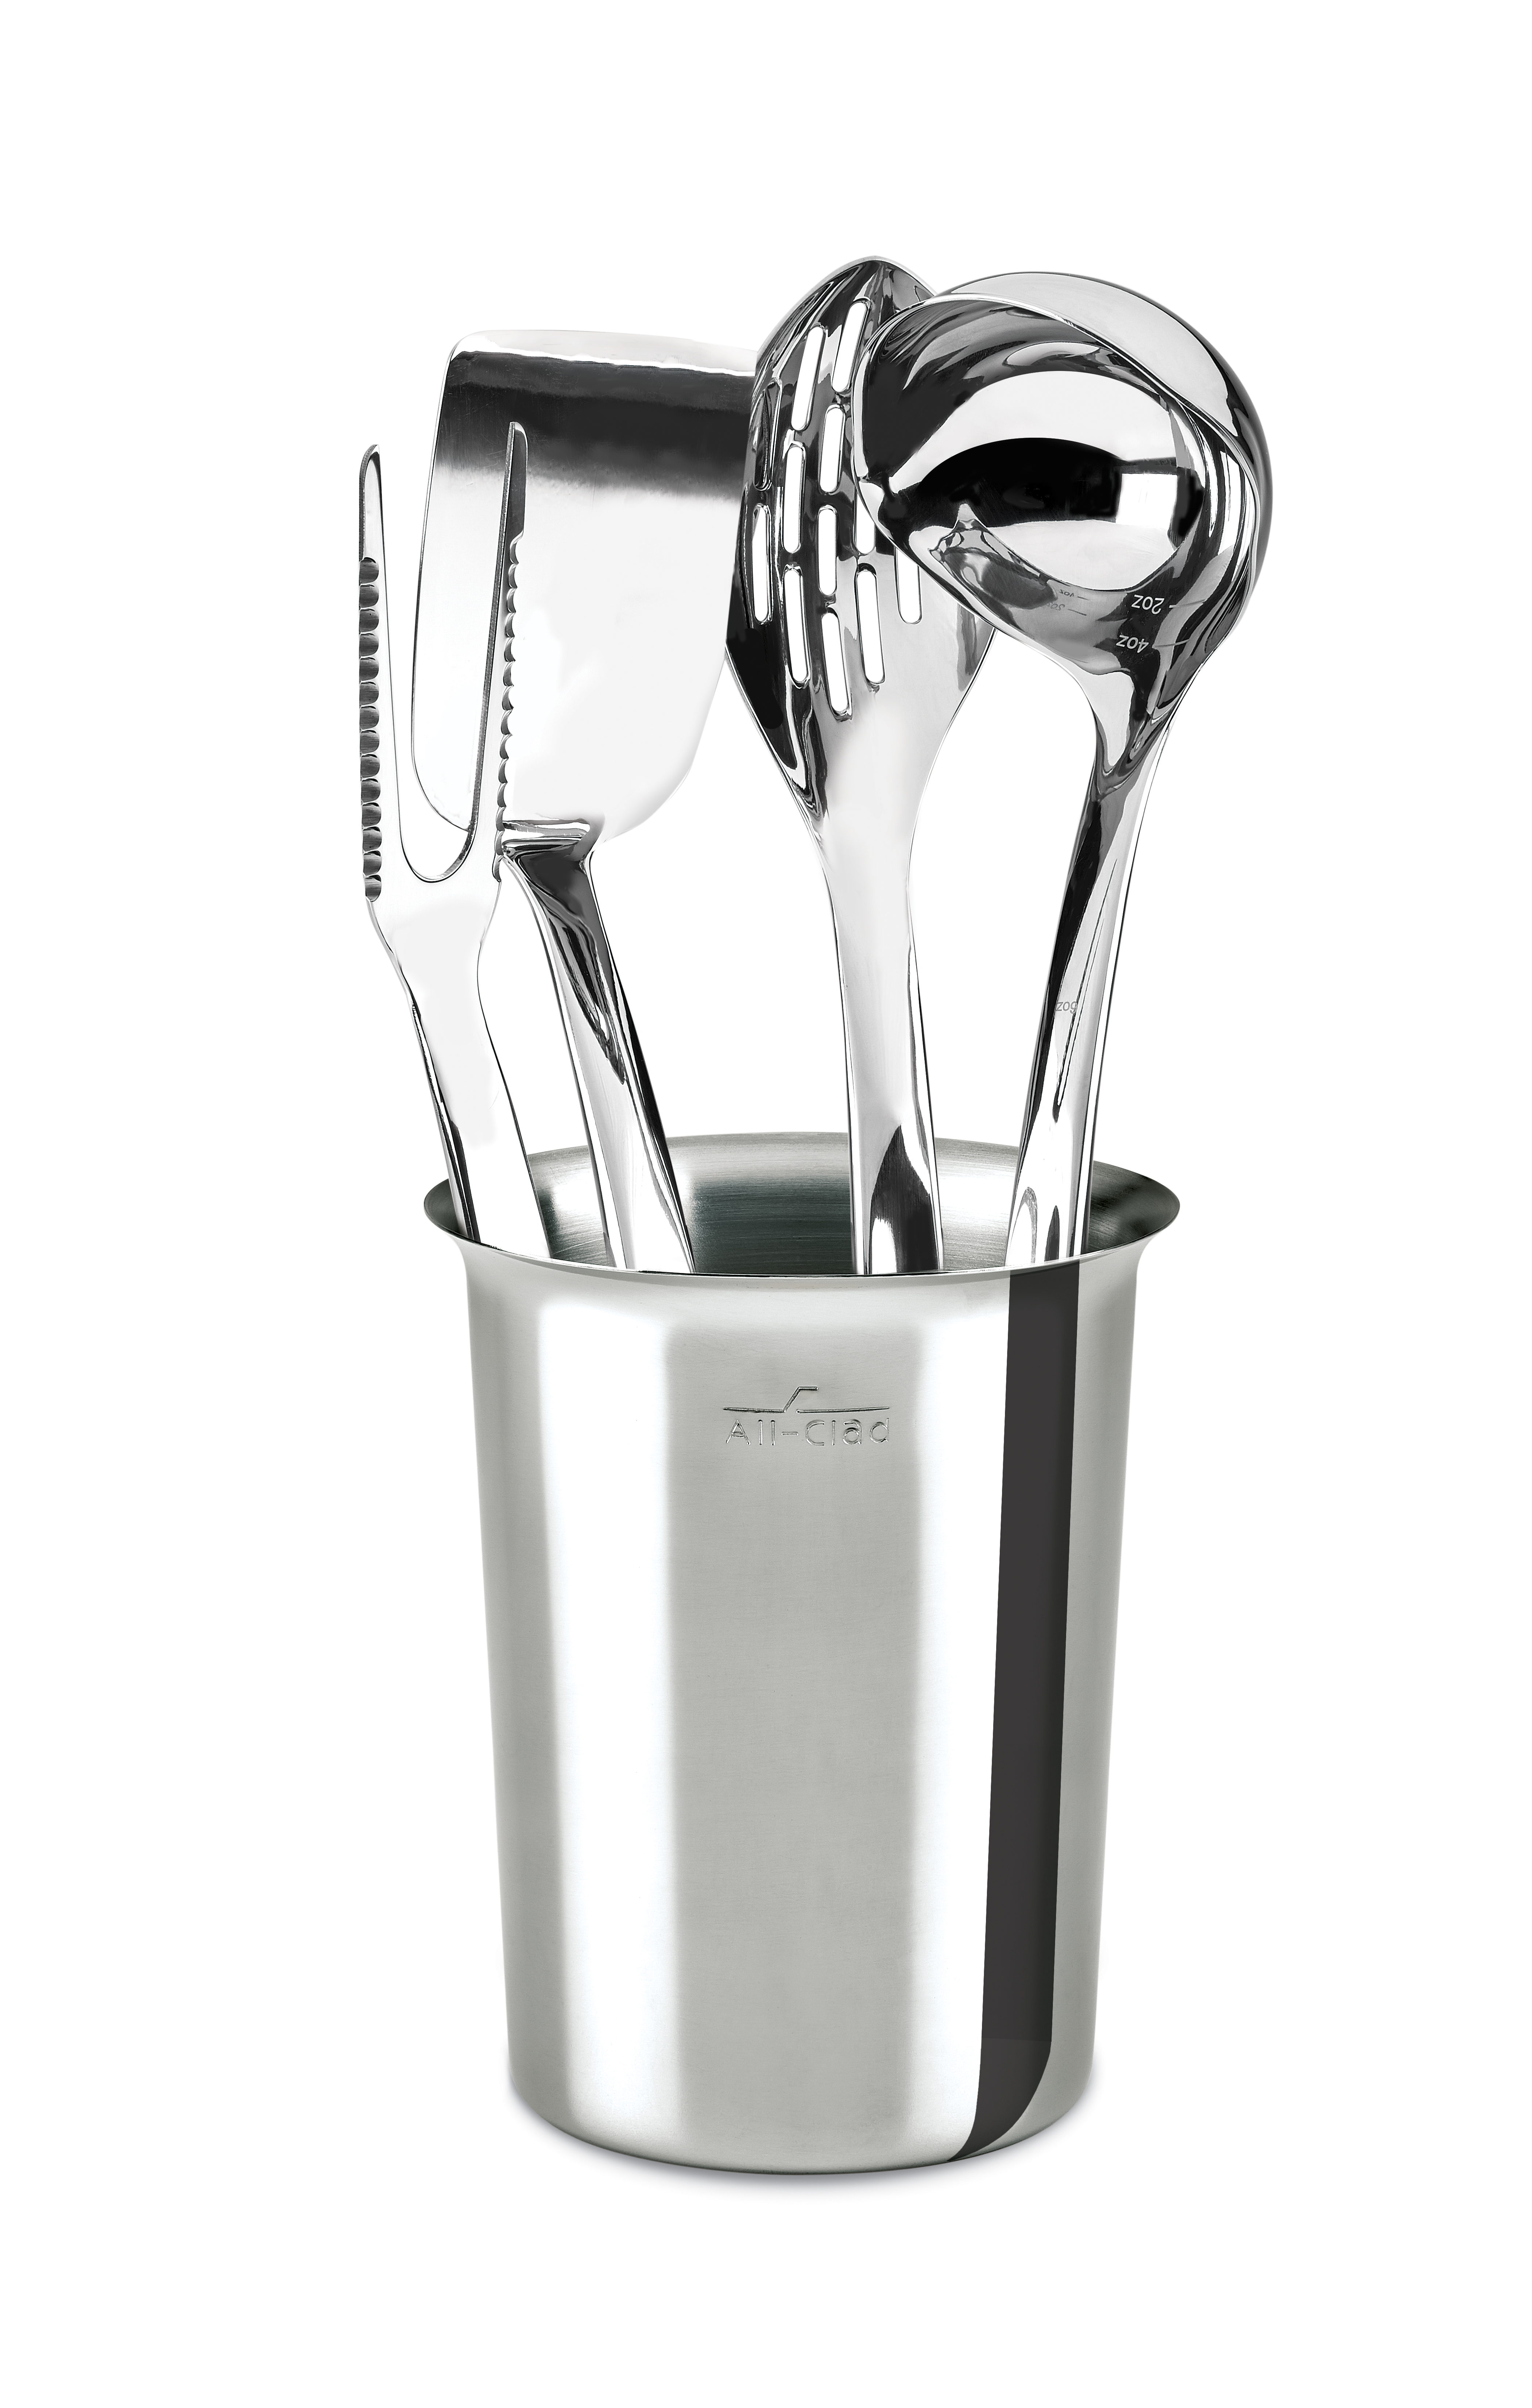 All-Clad Kitchen Tools Review | LoveToKnow